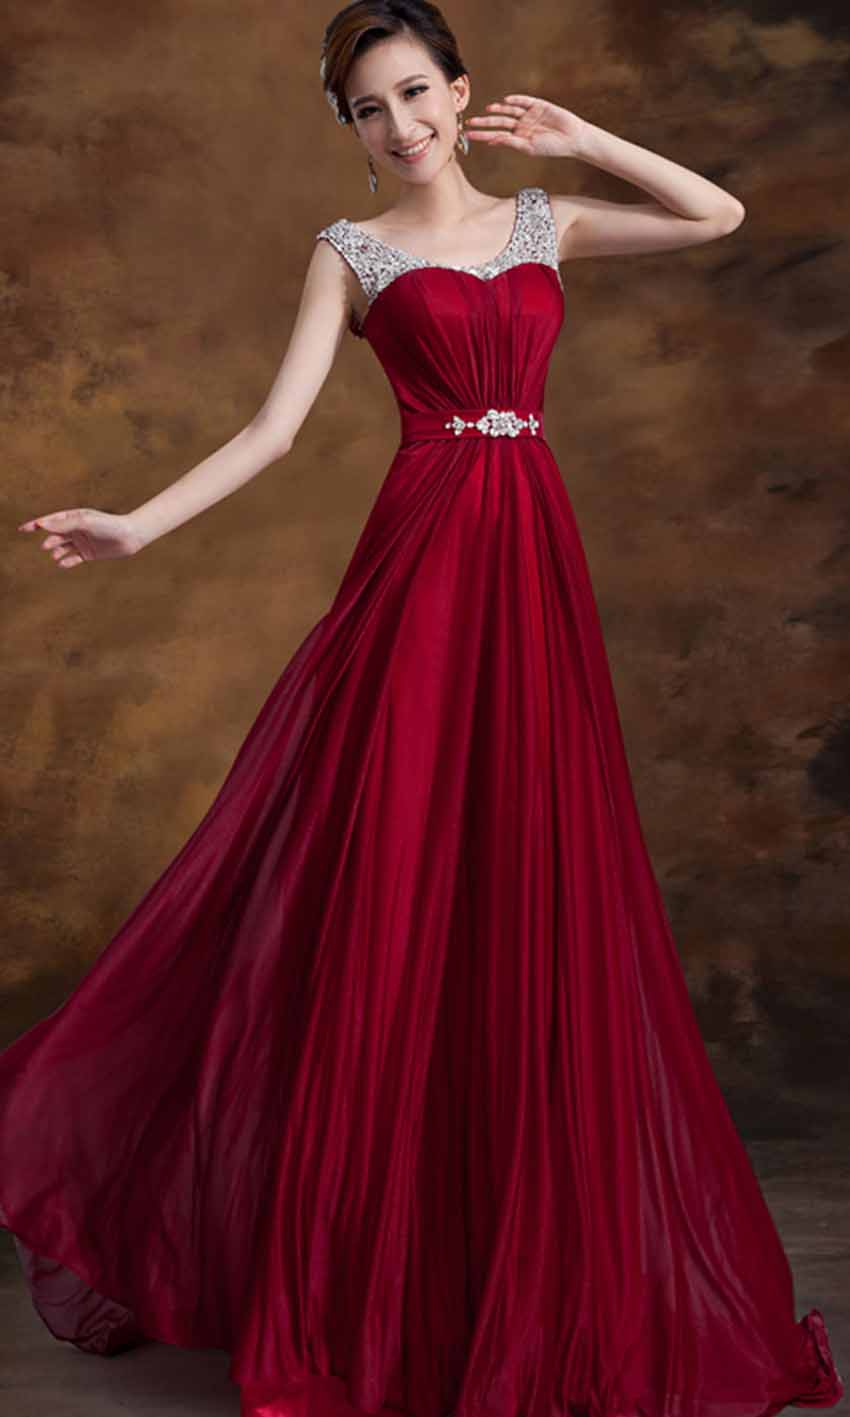 Wine Sequin Straps Long Prom Dresses 2015 KSP353 [KSP353] - £94.00 ...